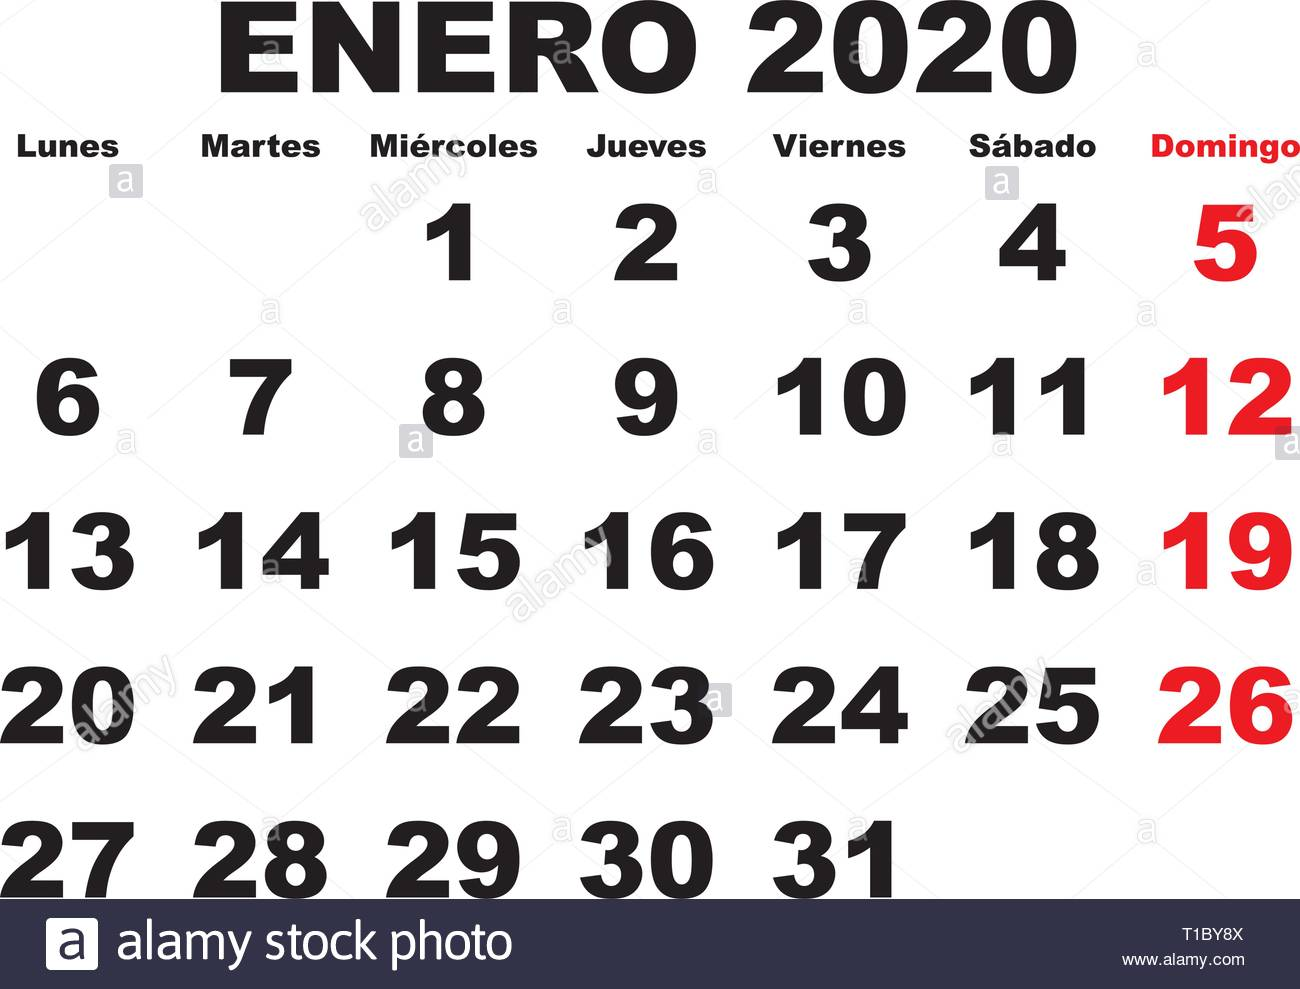 Calendario Verticale 2020.Calendario 2020 Stock Photos Calendario 2020 Stock Images